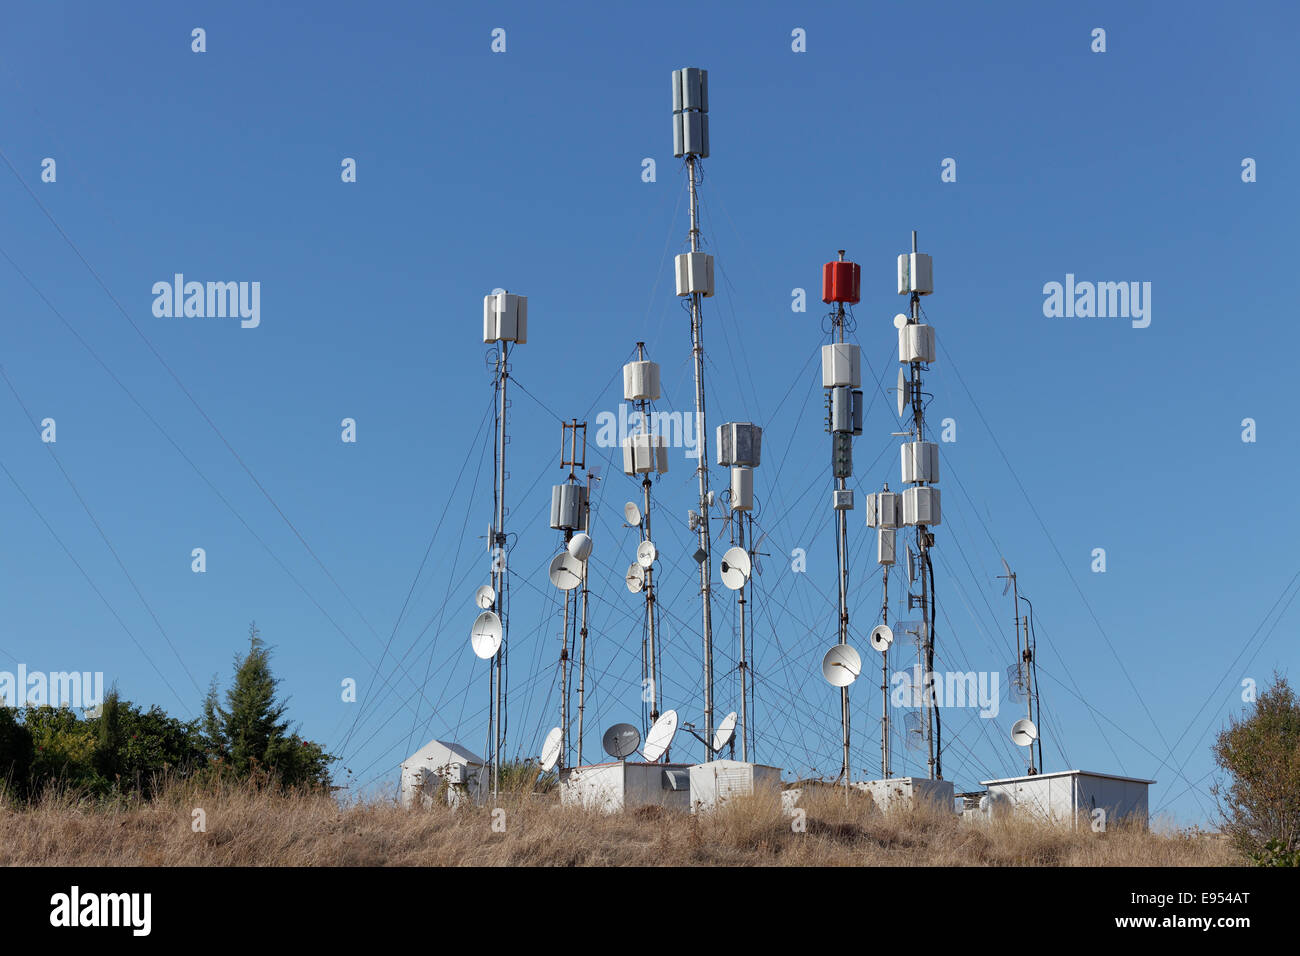 Transmitter masts for mobile telephone communication on Monte Smith, Rhodes, Dodecanese, Greece - Stock Image